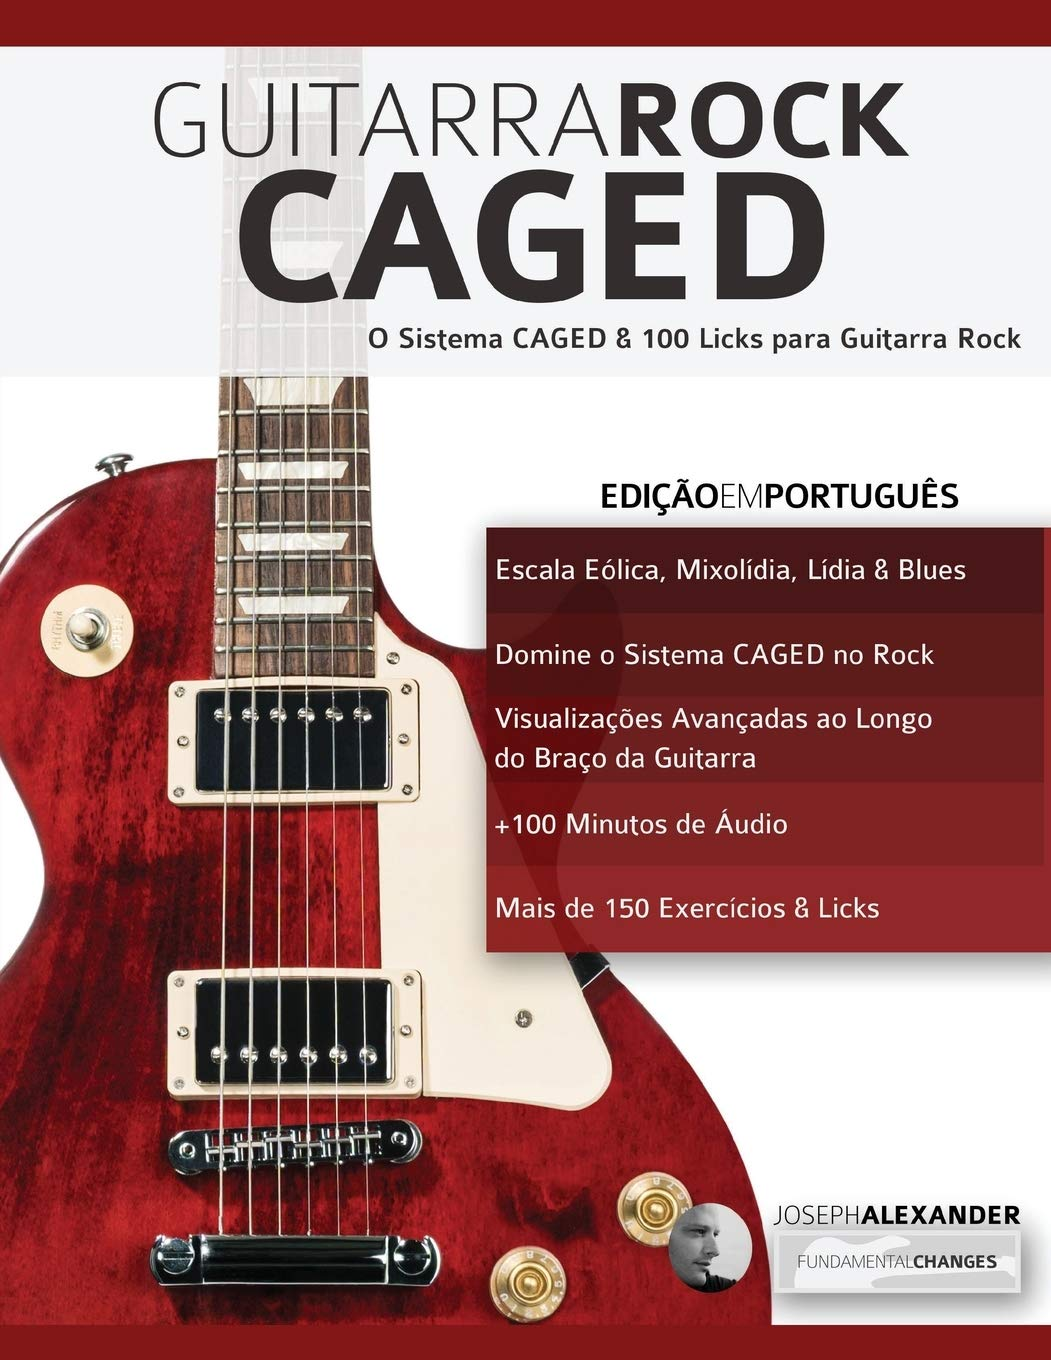 Guitarra Rock CAGED: O Sistema CAGED & 100 Licks para Guitarra Rock: 2: Amazon.es: Alexander, Mr. Joseph, Chaves, Mr. Marcos: Libros en idiomas extranjeros